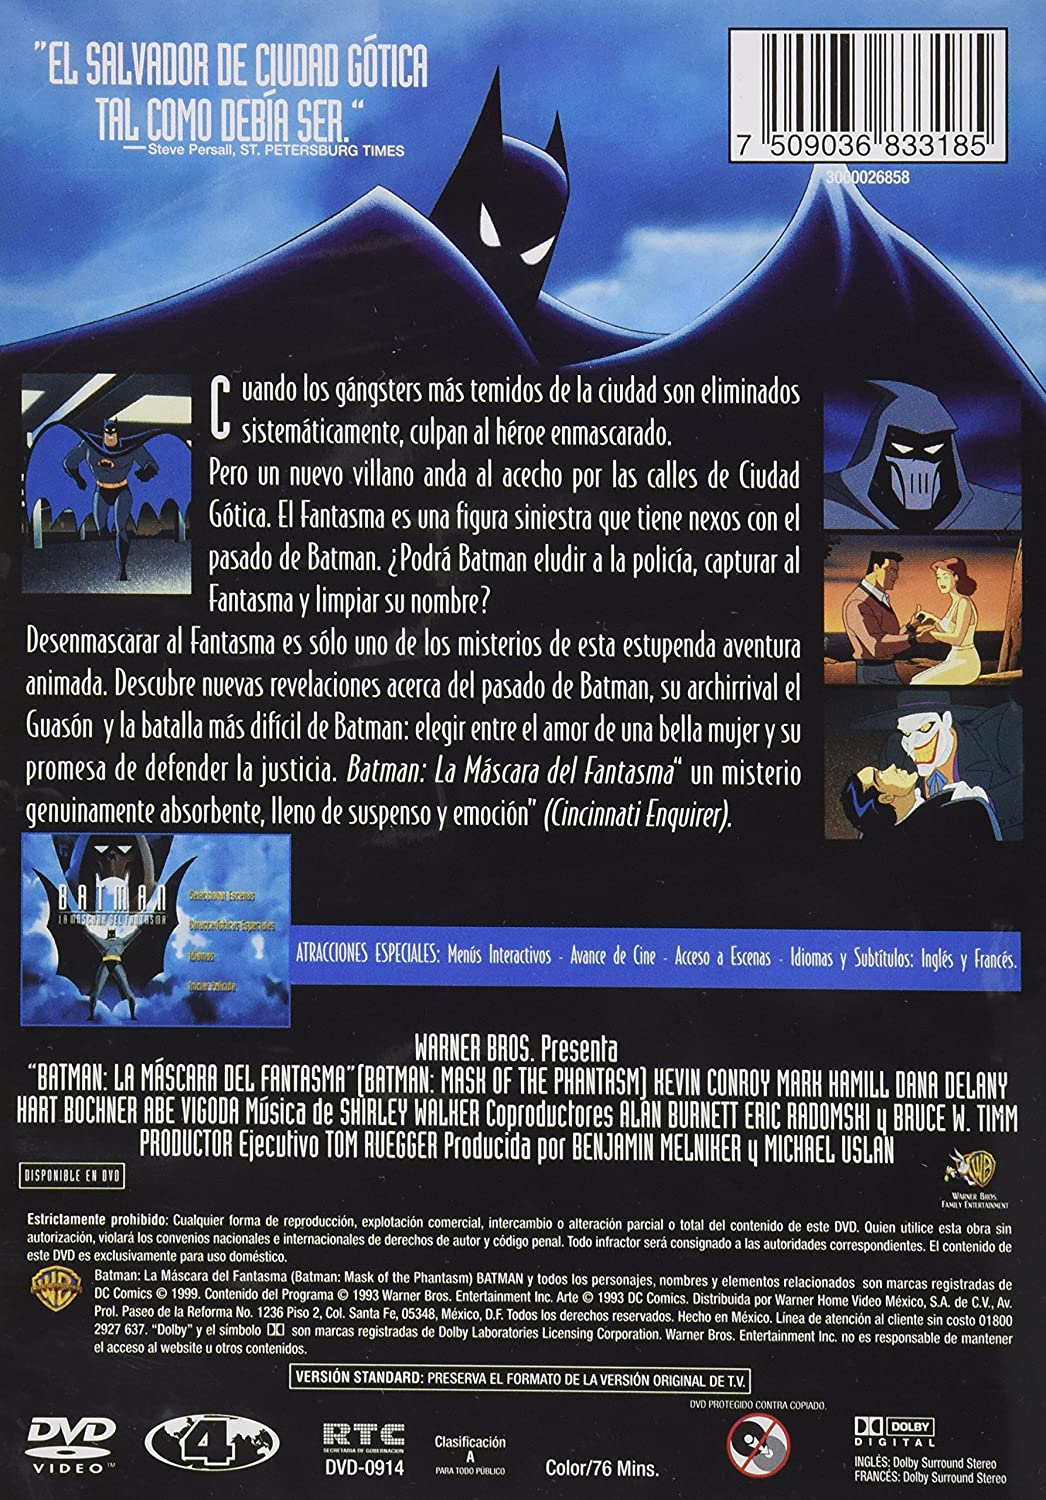 Amazon.com: BATMAN:LA MASCARA DEL FANTASMA (BATMAN:MASK OF THE PHANTASM): Movies & TV